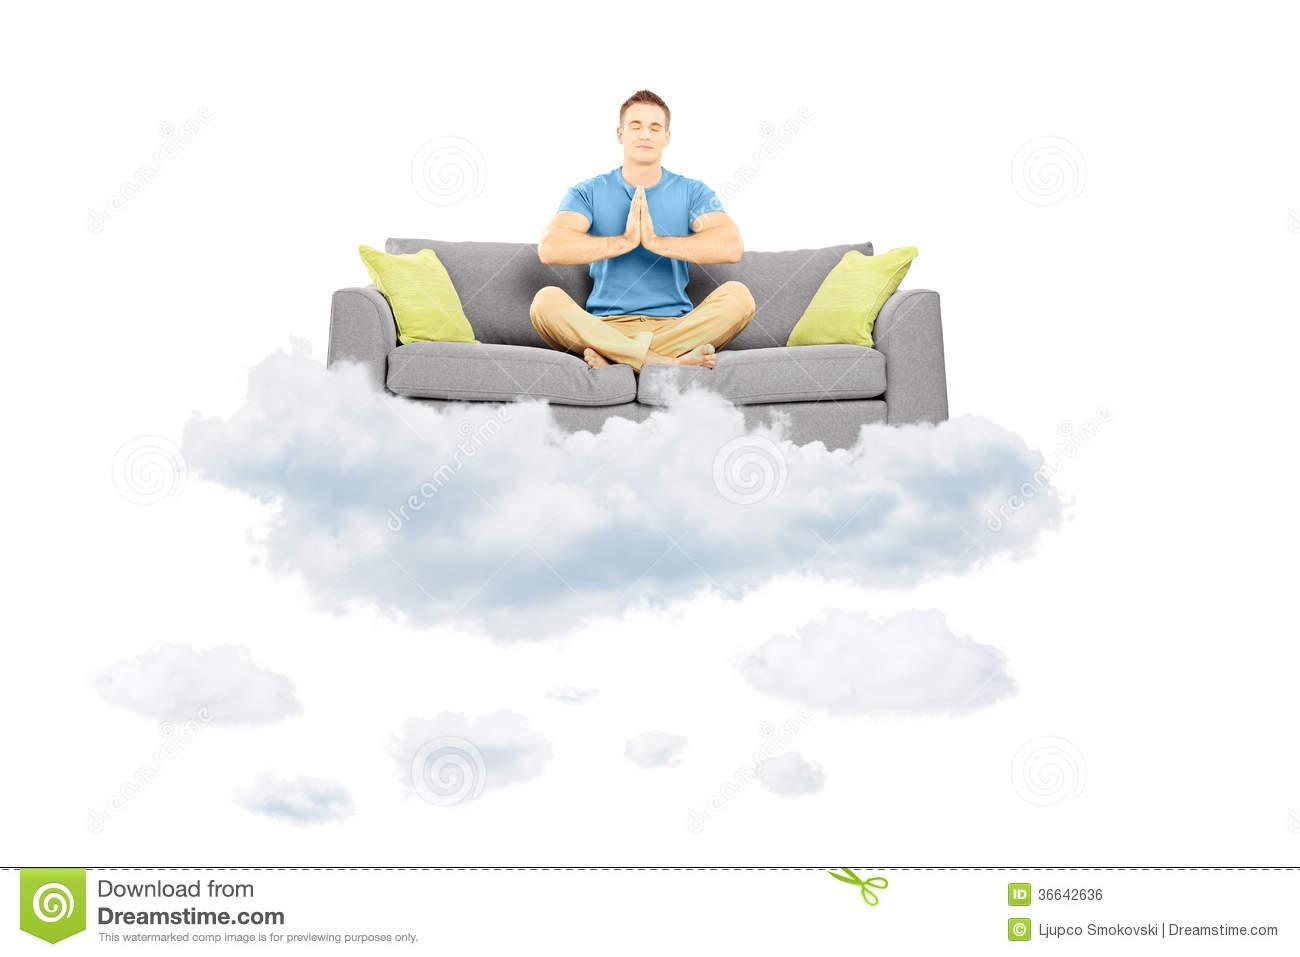 Guy Meditating On A Sofa And Floating On A Cloud Royalty Free Intended For Floating Cloud Couches (Image 11 of 21)